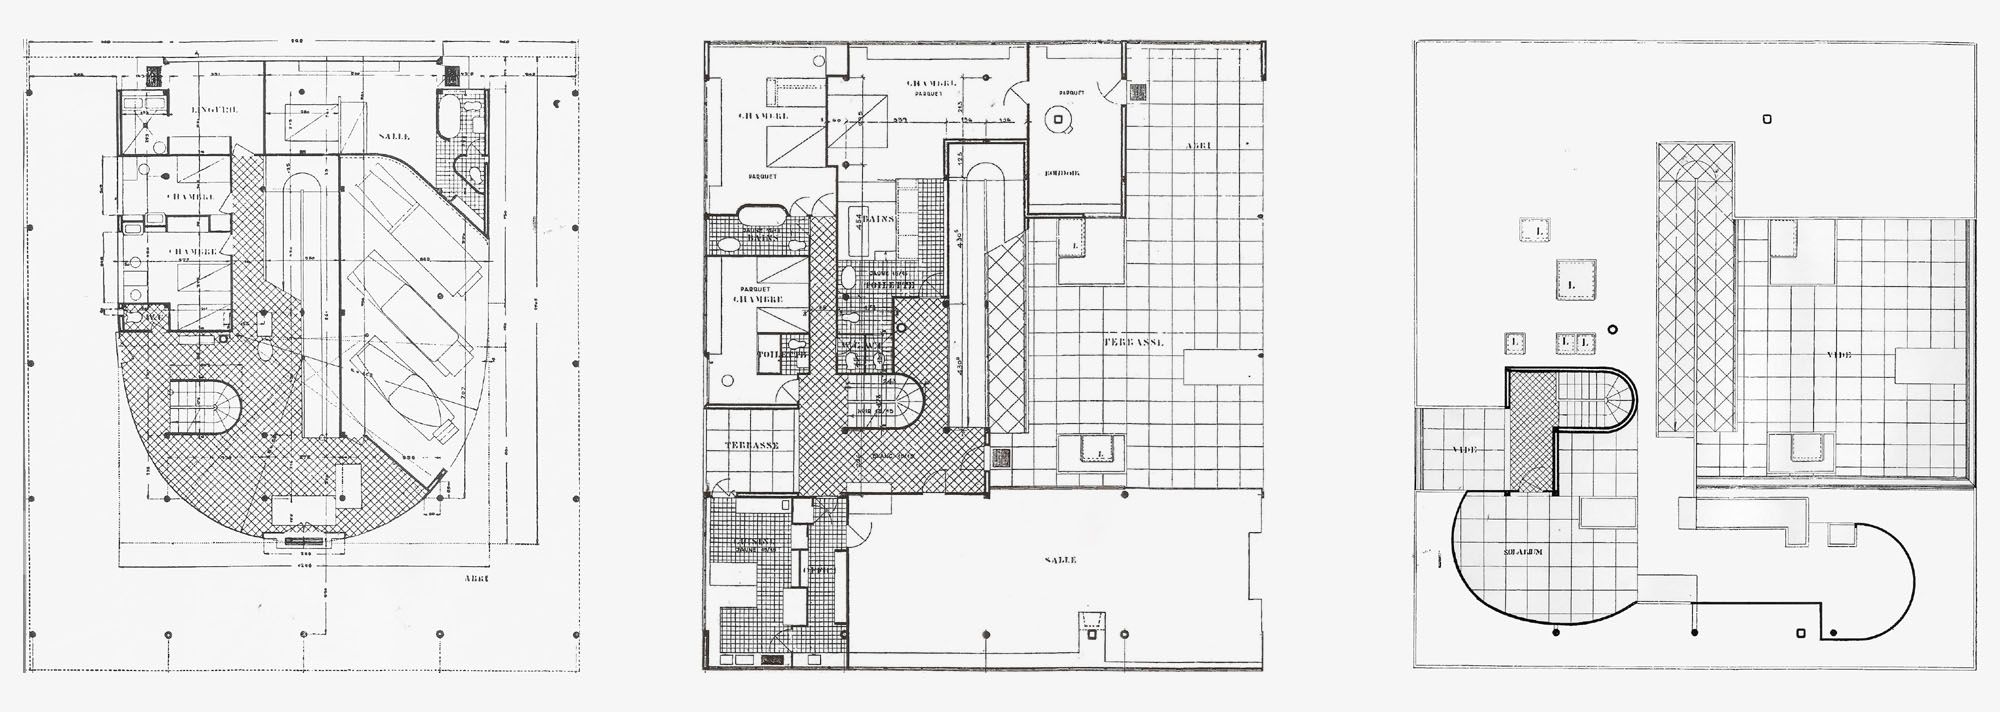 Le corbusier villa savoye part 2 architecture for Villa architecture design plans